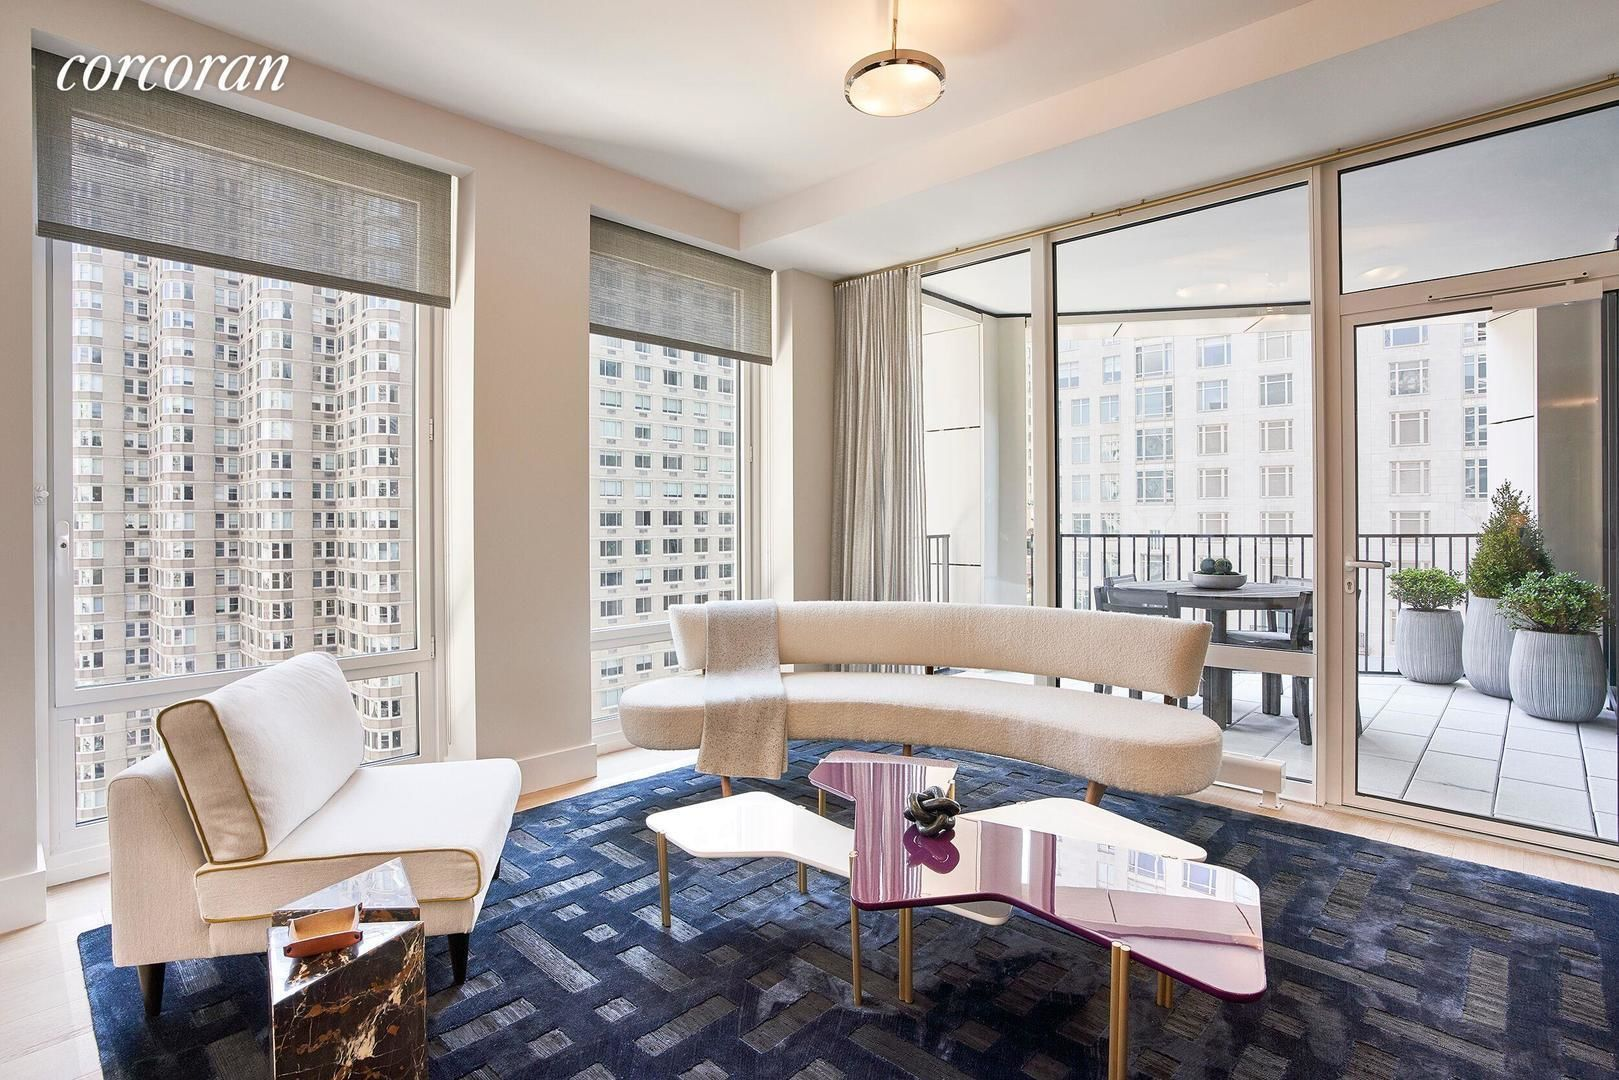 Apartment for sale at 15 West 61st Street, Apt 15B